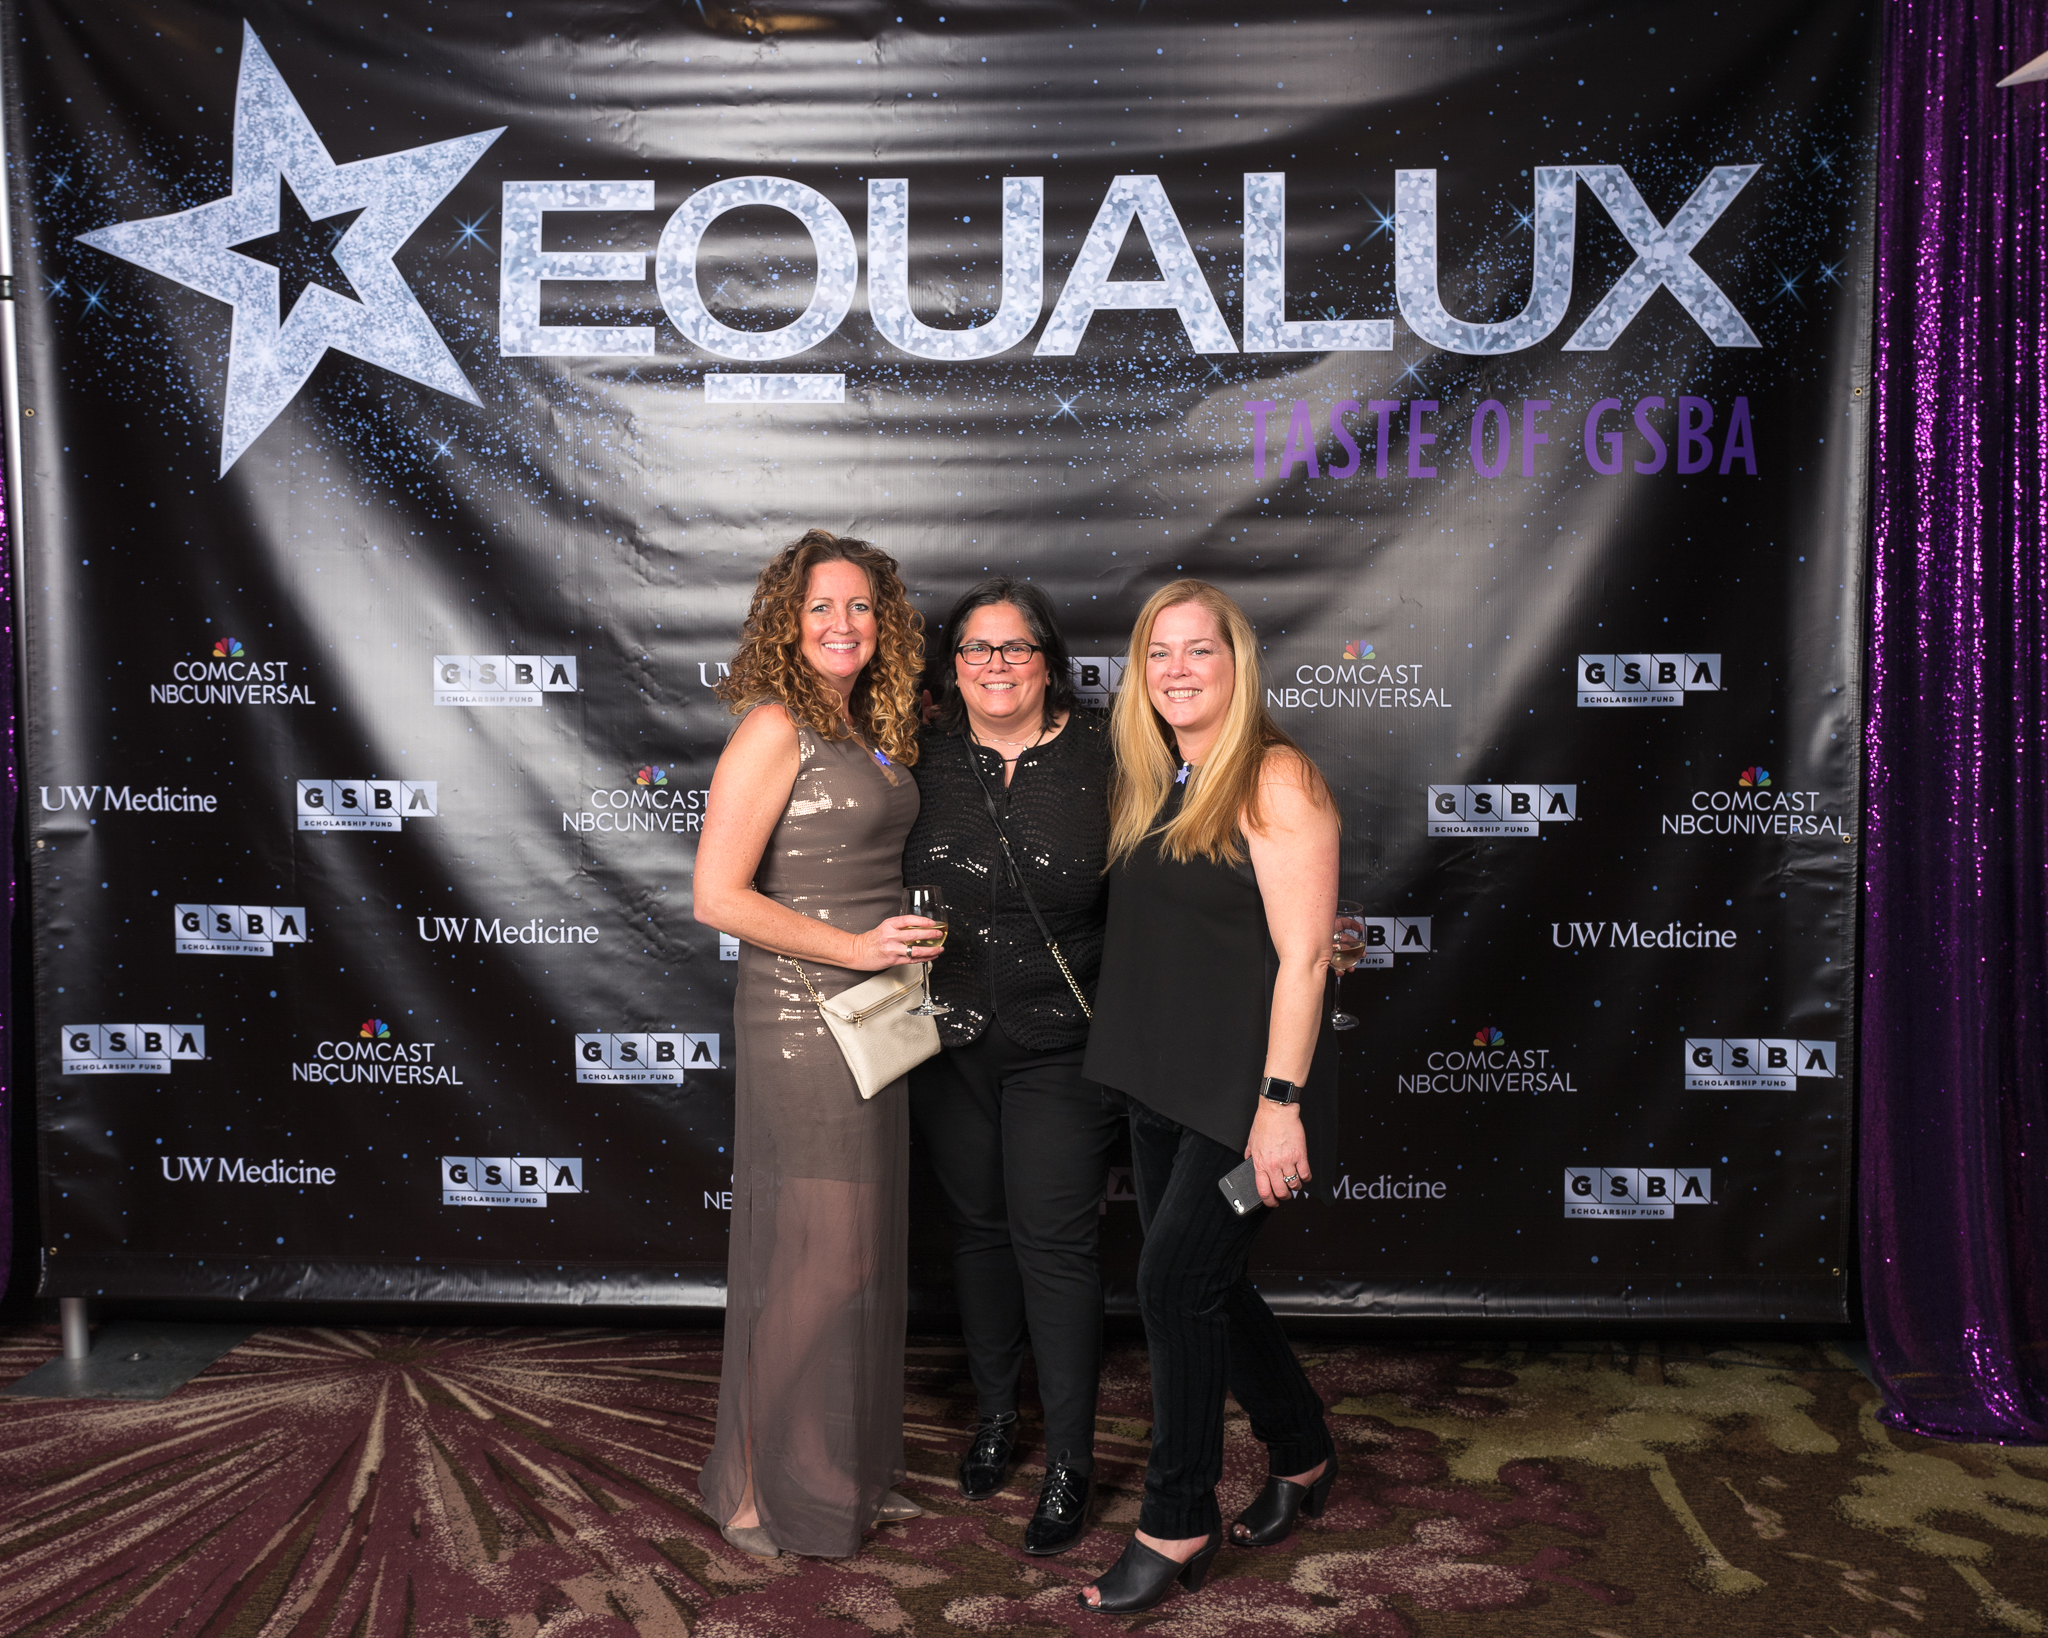 111718_GSBA EQUALUX at The Westin Seattle (Credit- Nate Gowdy)-32.jpg